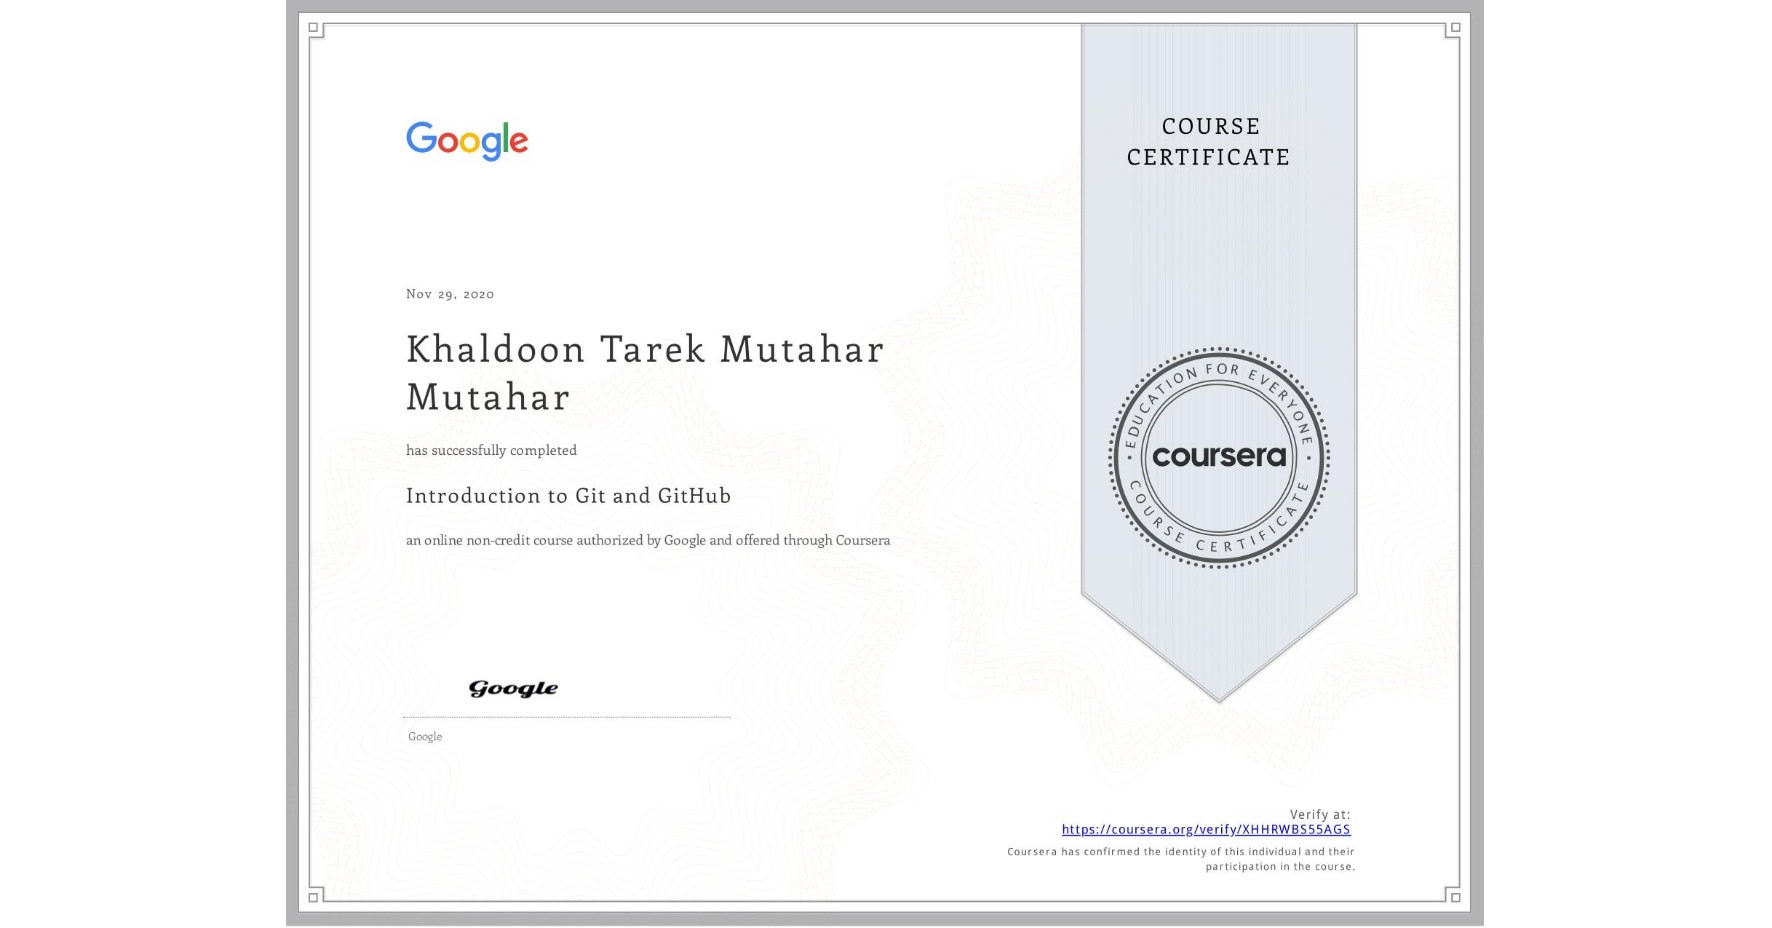 View certificate for KHALDOON TAREK MUTAHAR  MUTAHAR, Introduction to Git and GitHub, an online non-credit course authorized by Google and offered through Coursera